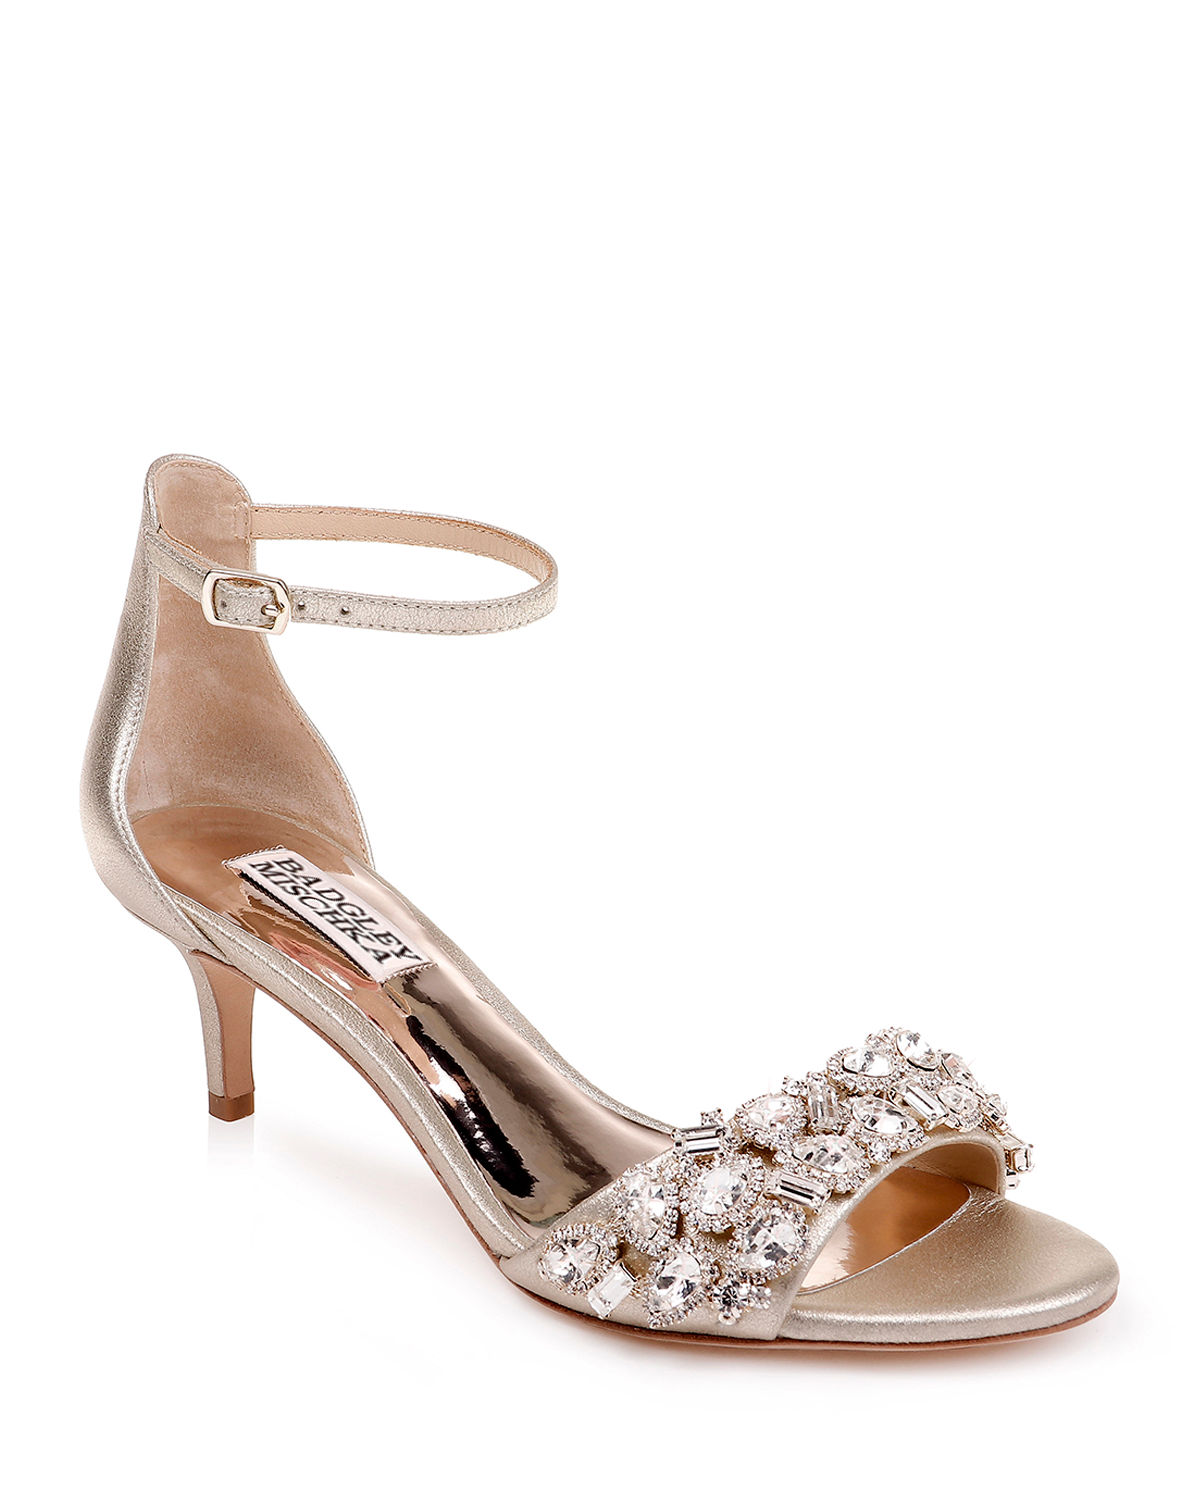 Lara Embellished Metallic Kitten-Heel Sandals